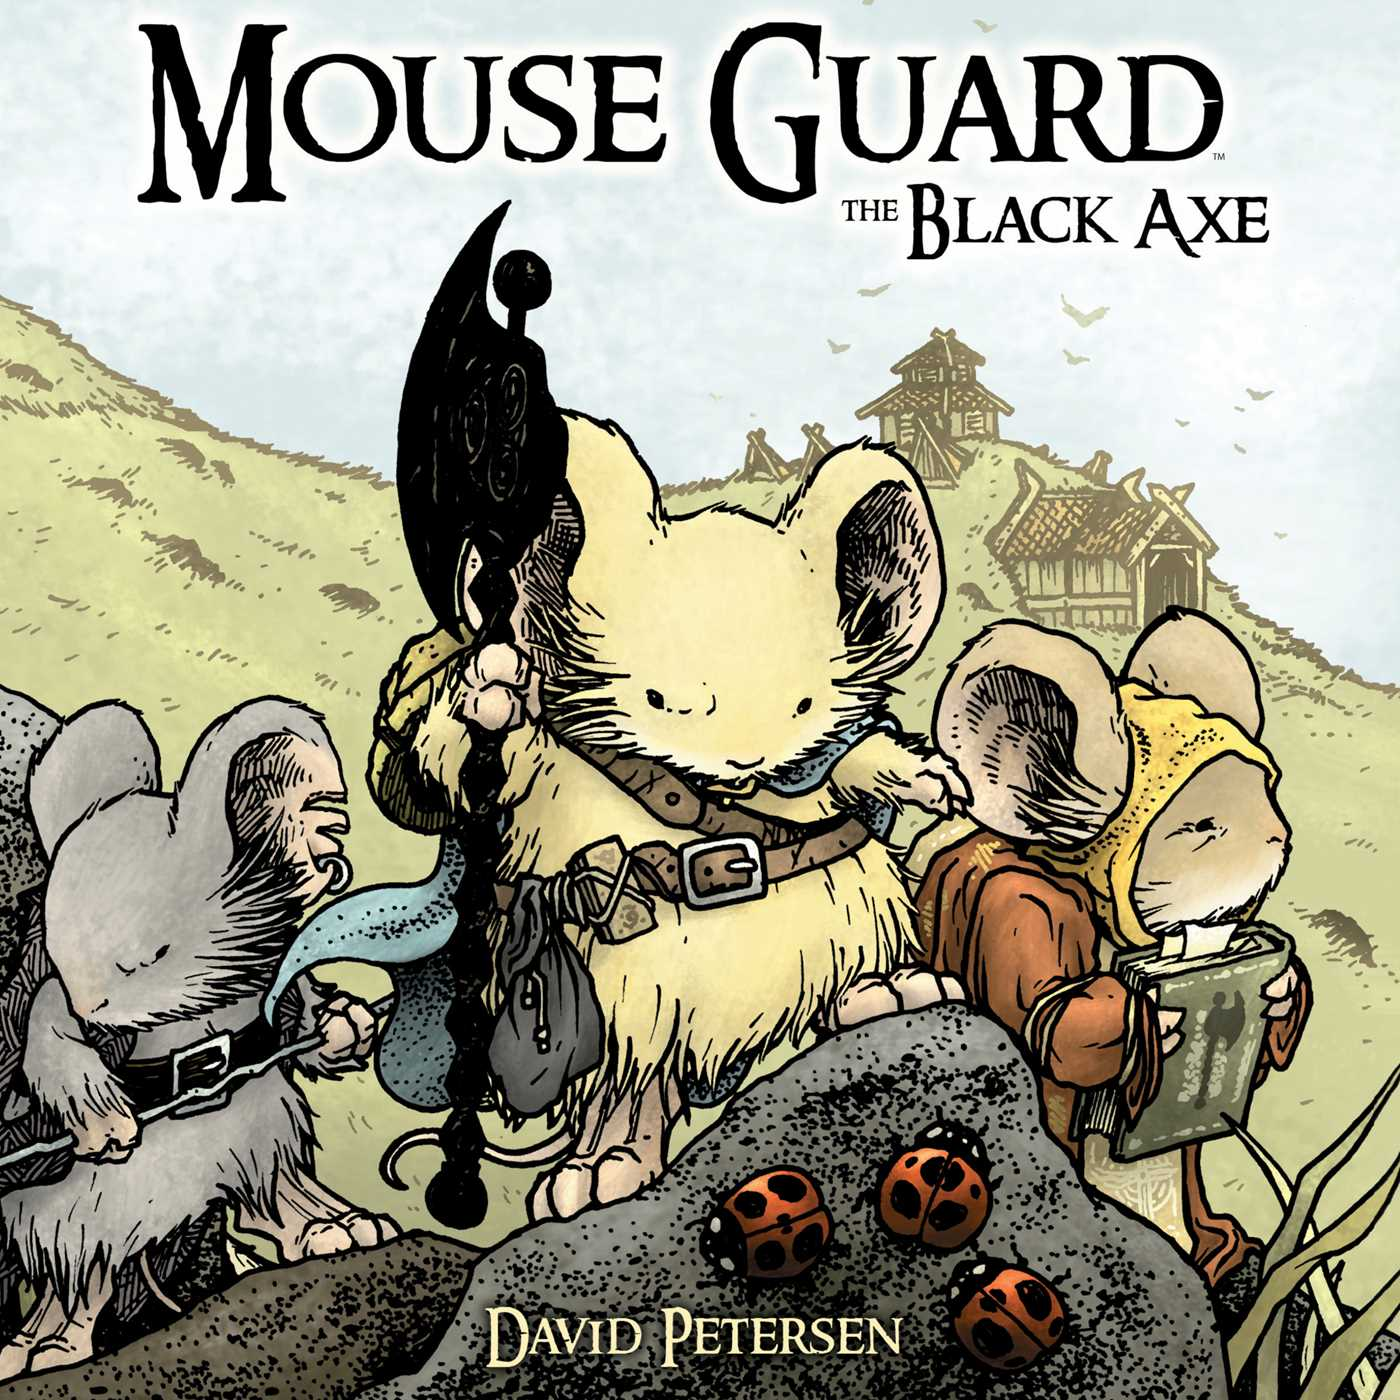 Mouse-guard-volume-3-the-black-axe-9781936393060_hr